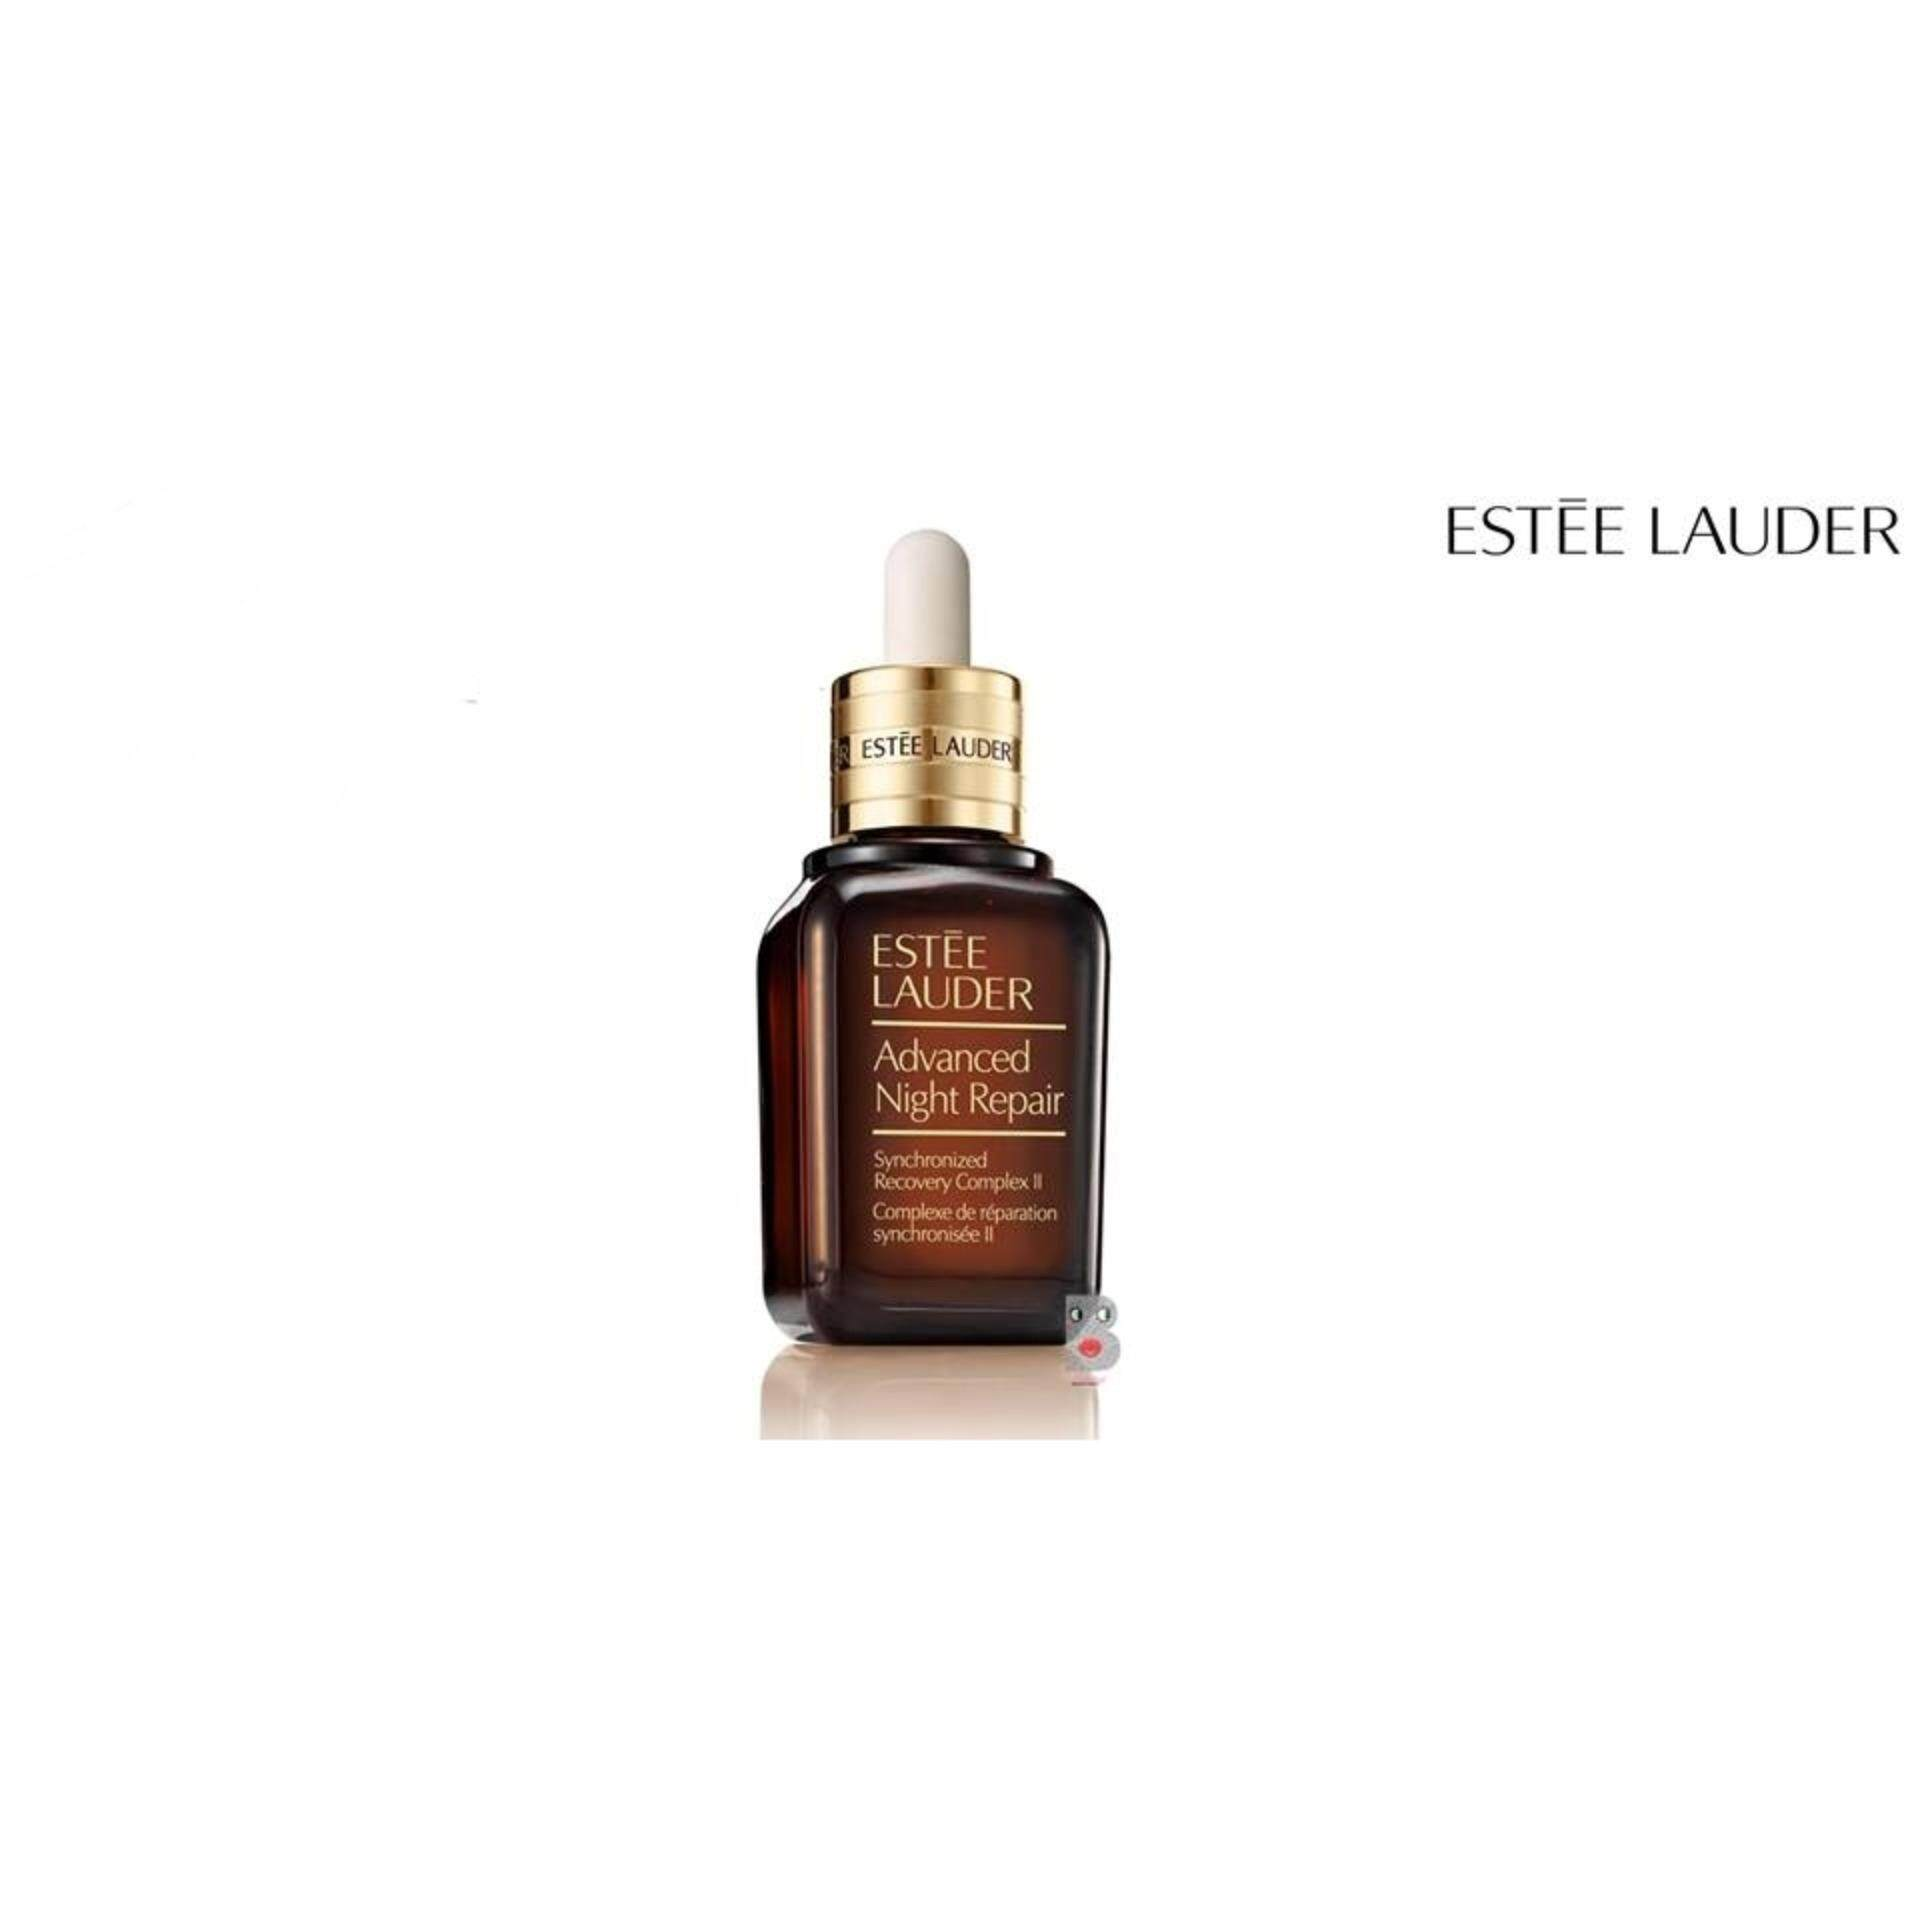 ขาย ซื้อ Estee Lauder Advanced Night Repair Synchronized Recovery Complex Ii 50Ml Nobox Thailand